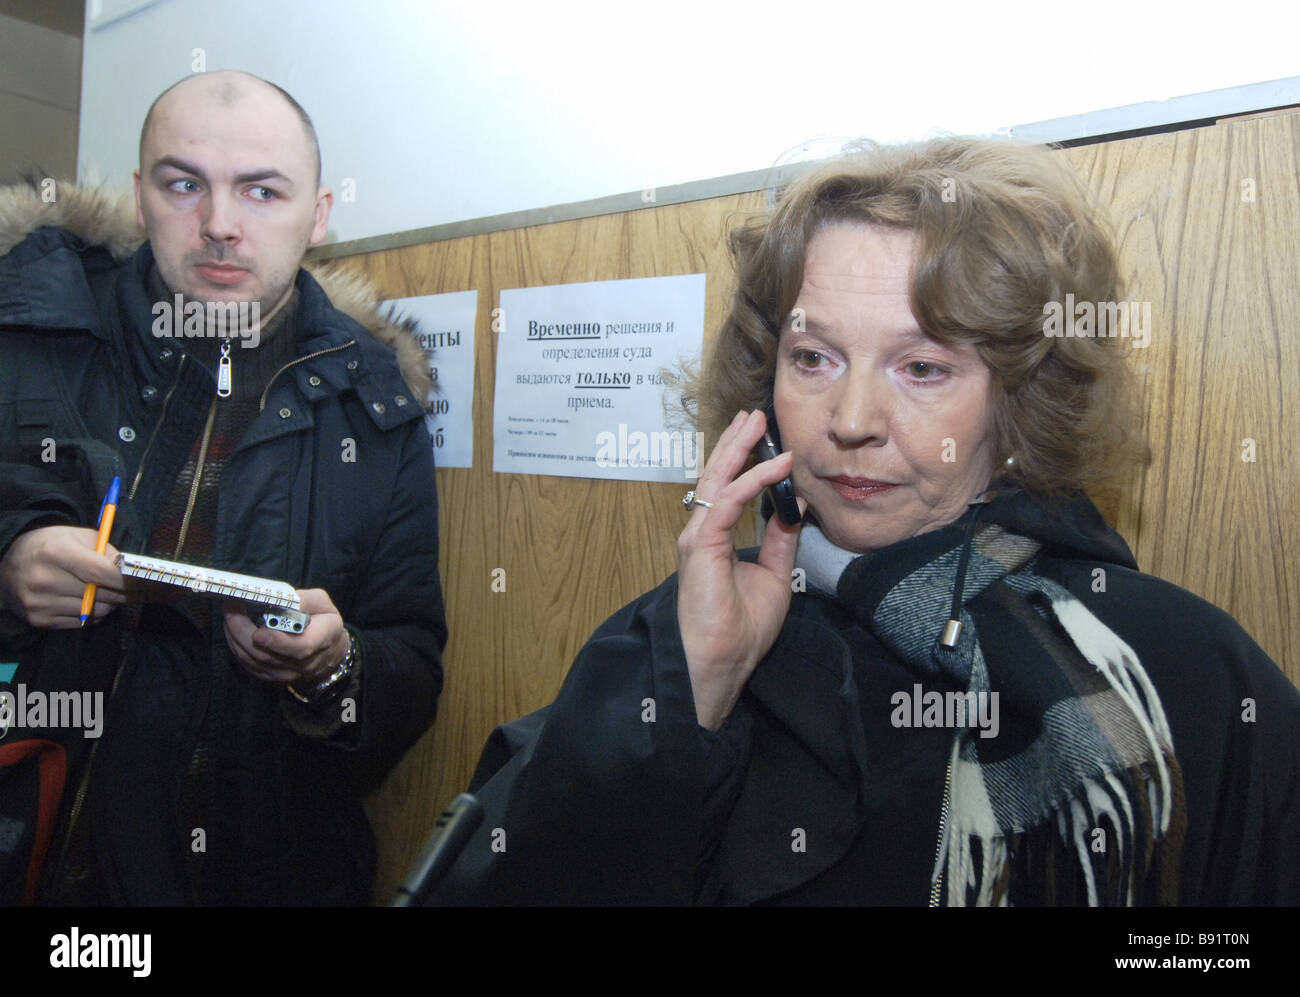 Yelena Lvova the defense counsel of Vasily Alexanyan after preliminary court hearings - Stock Image